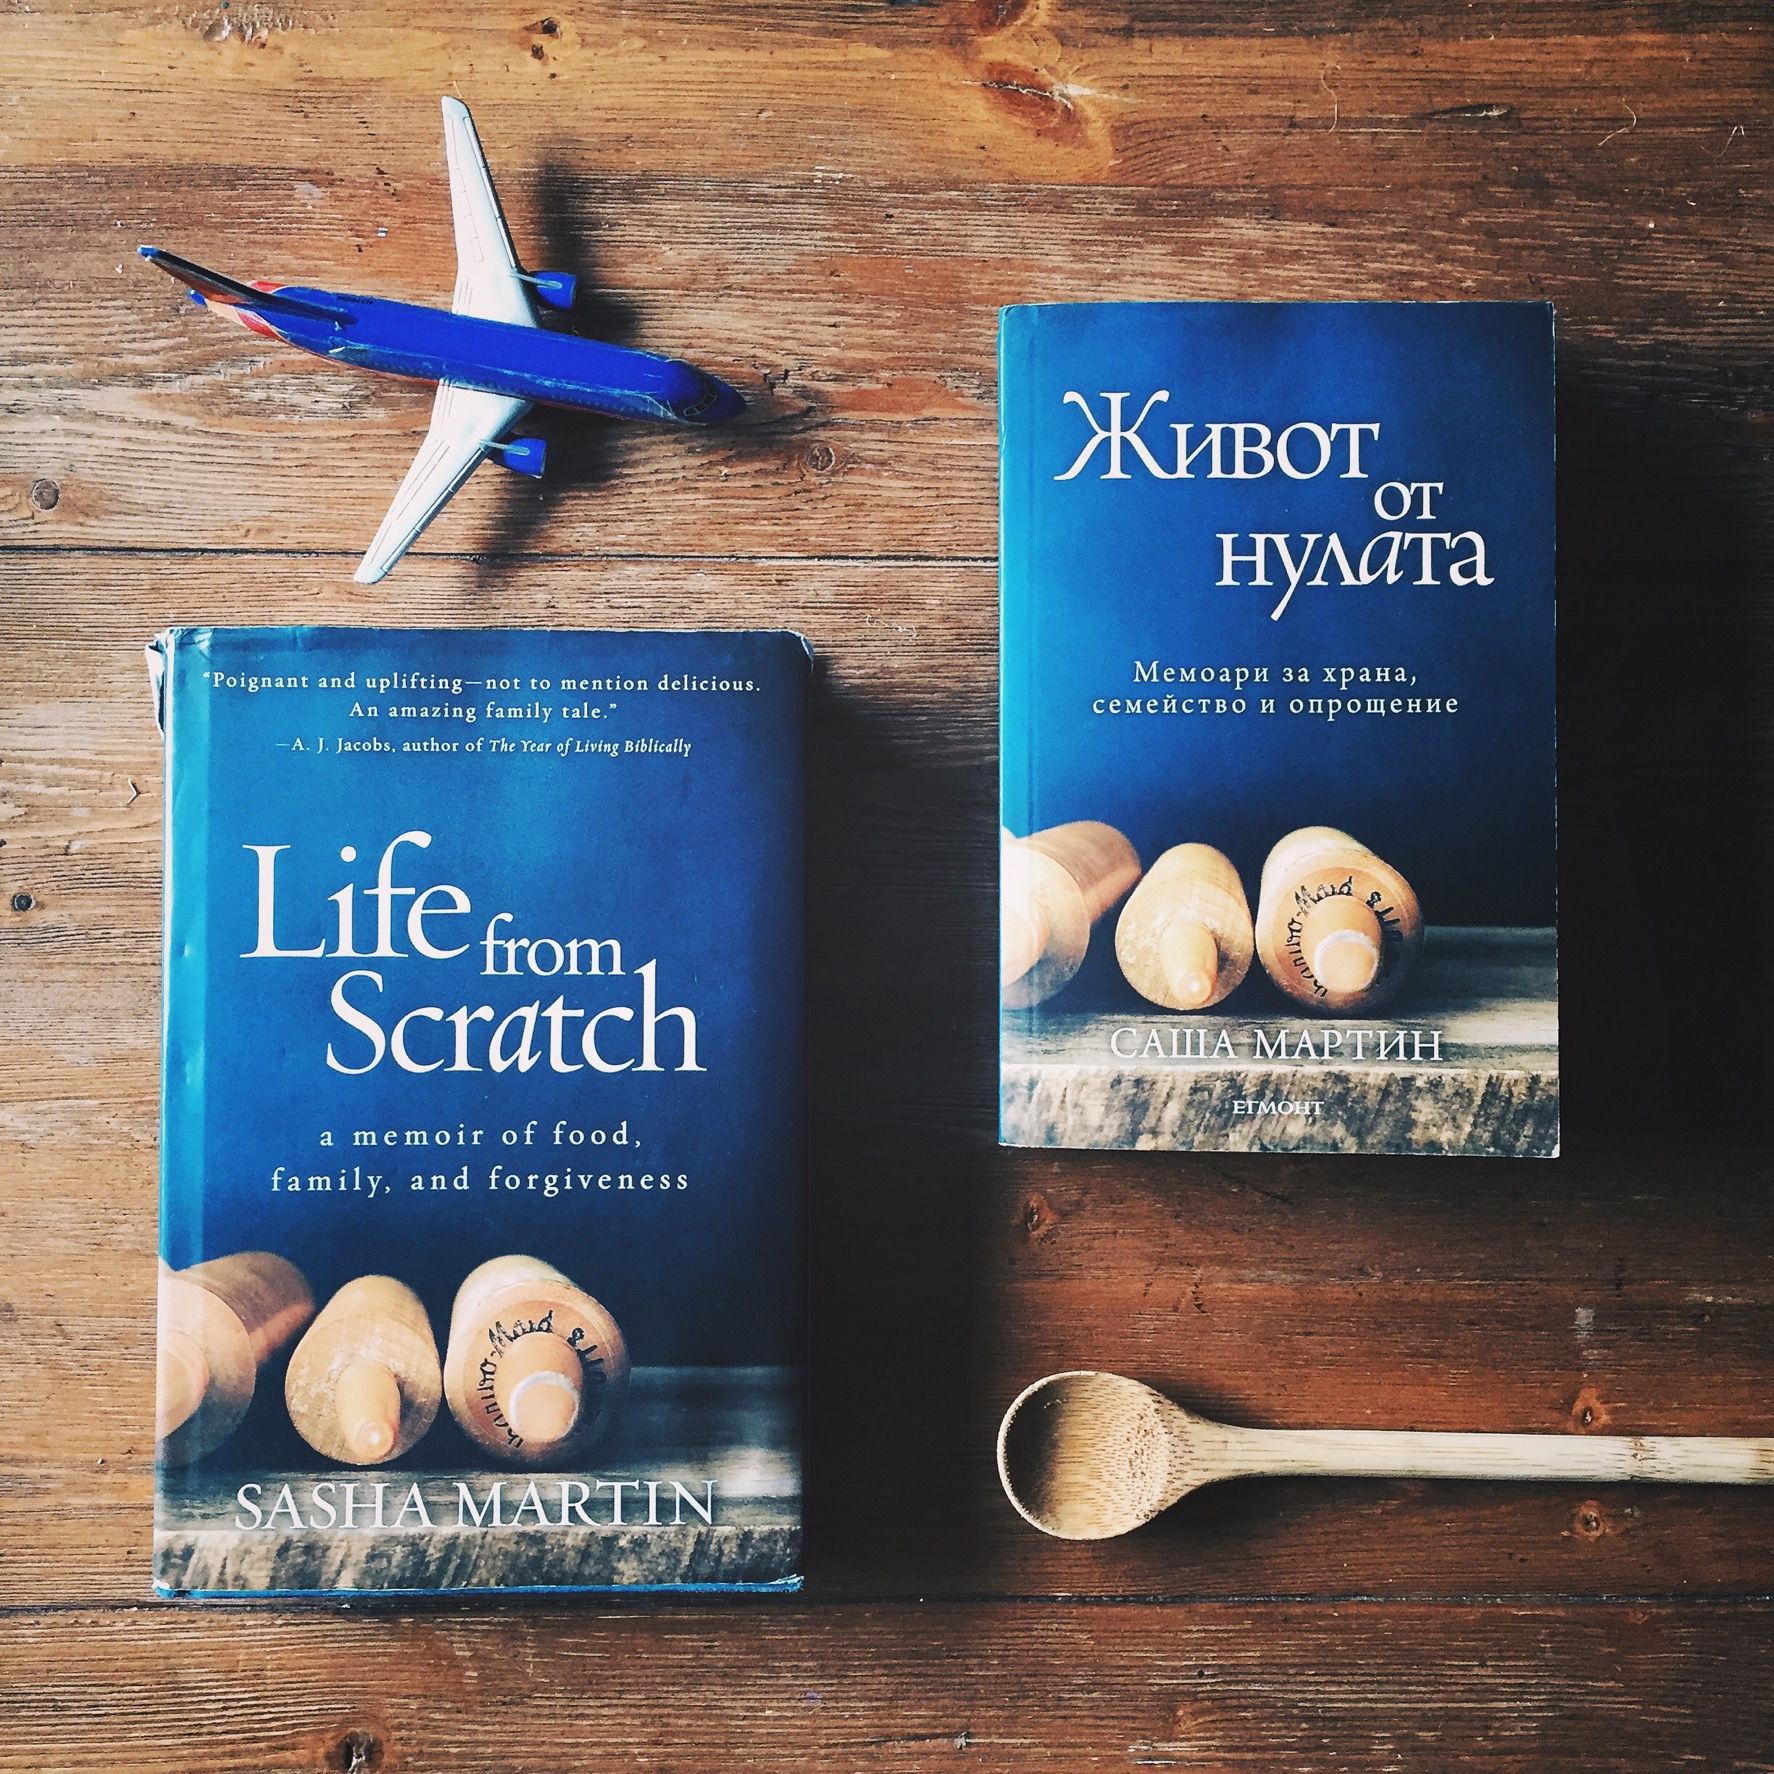 Bulgarian memoir LIFE FROM SCRATCH